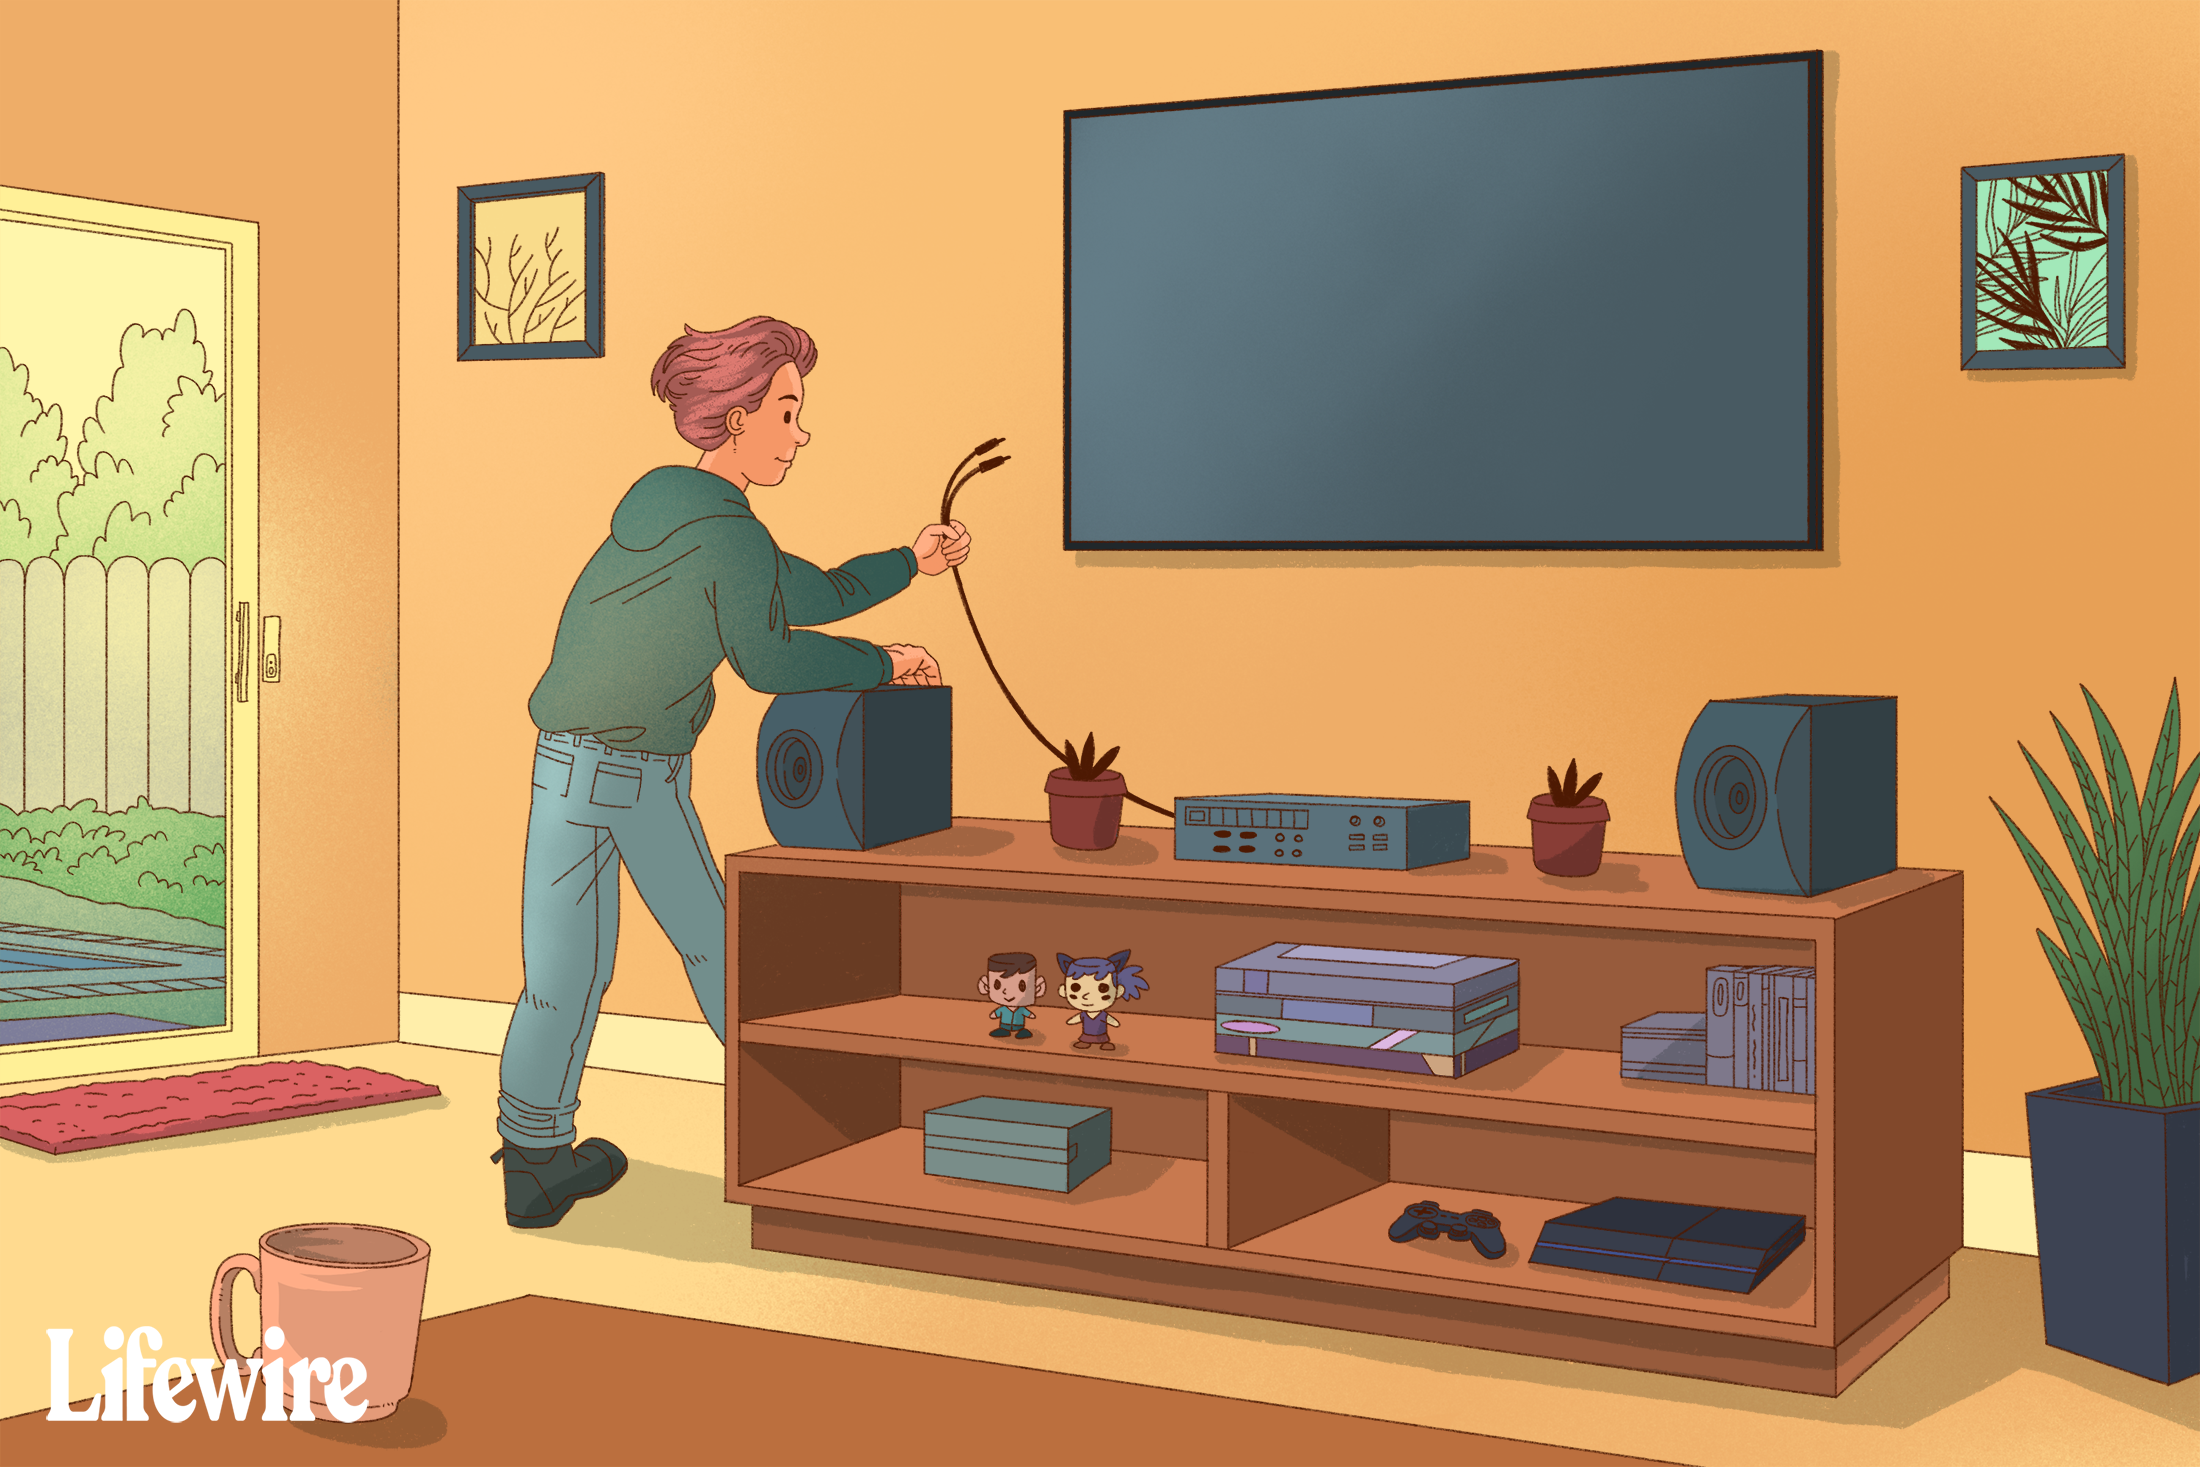 Person connecting their TV to a stereo system